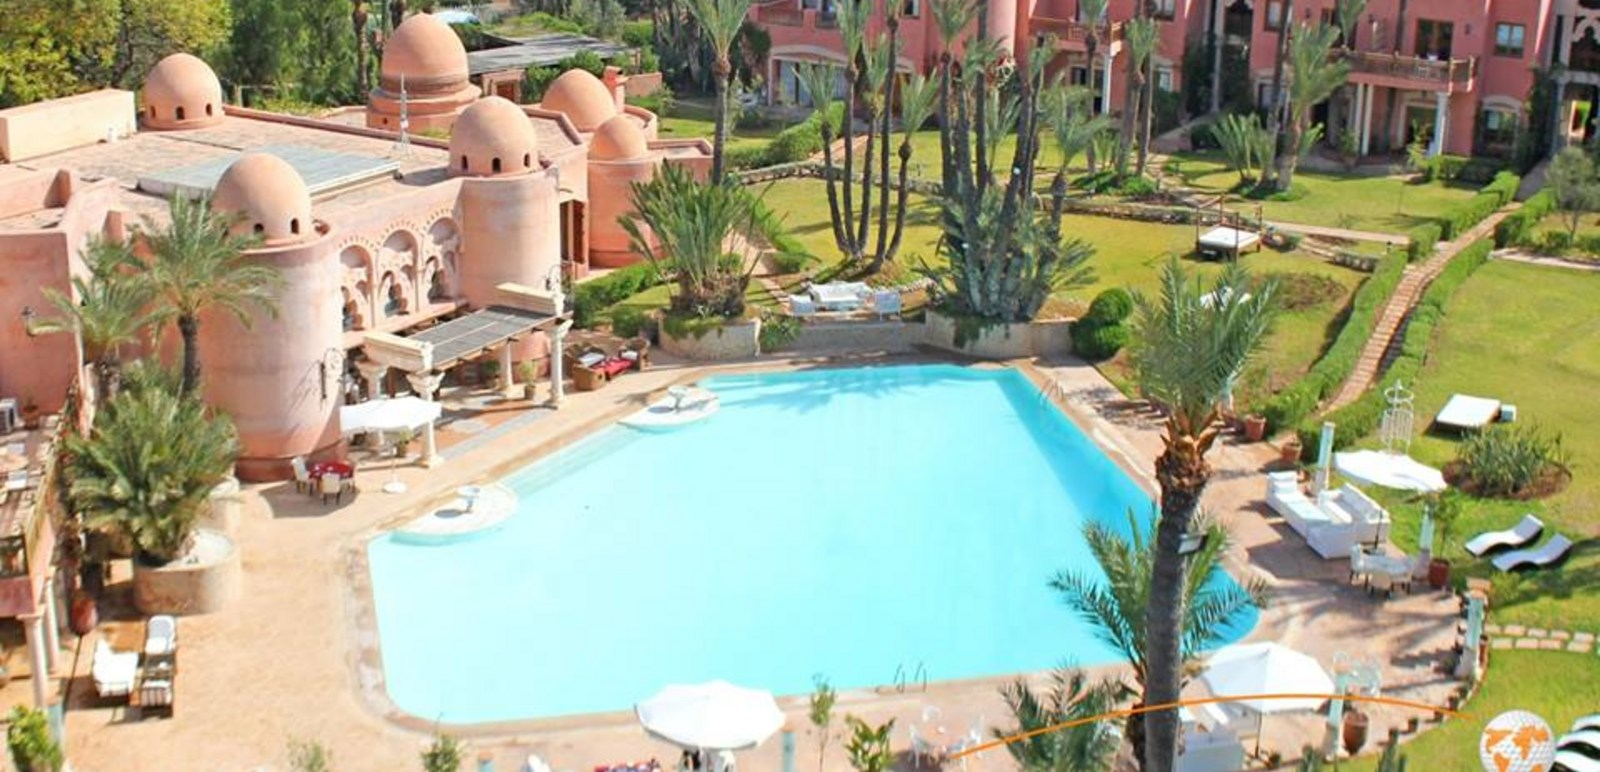 Palais Mehdi Hotel Marrakesch, Hotel Marrakesch, hotel luxe Moroc Marrakech, 5 star hotel Morocco Marrakech, 5 Sterne Hotel Marokko Marrakesch, Luxushotel Marokko, luxury hotels, 5 Sterne Hotels, Hotel 5 etoiles Maroc Marrakech, luxury Hotel Morocco, 5 star hotels  - Luxushotel Marokko, Luxury Hotel Morocco, H�tel de luxe Maroc<br><br>Luxury Hotels Worldwide 5 Star Hotels and Five Star Resorts<br><br>The images displayed on websites of DLW Luxury Hotels Worldwide - Hotelreservations Worldwide are owned by DLW Hotels or third parties and are therefore the property of DLW Hotels or others.